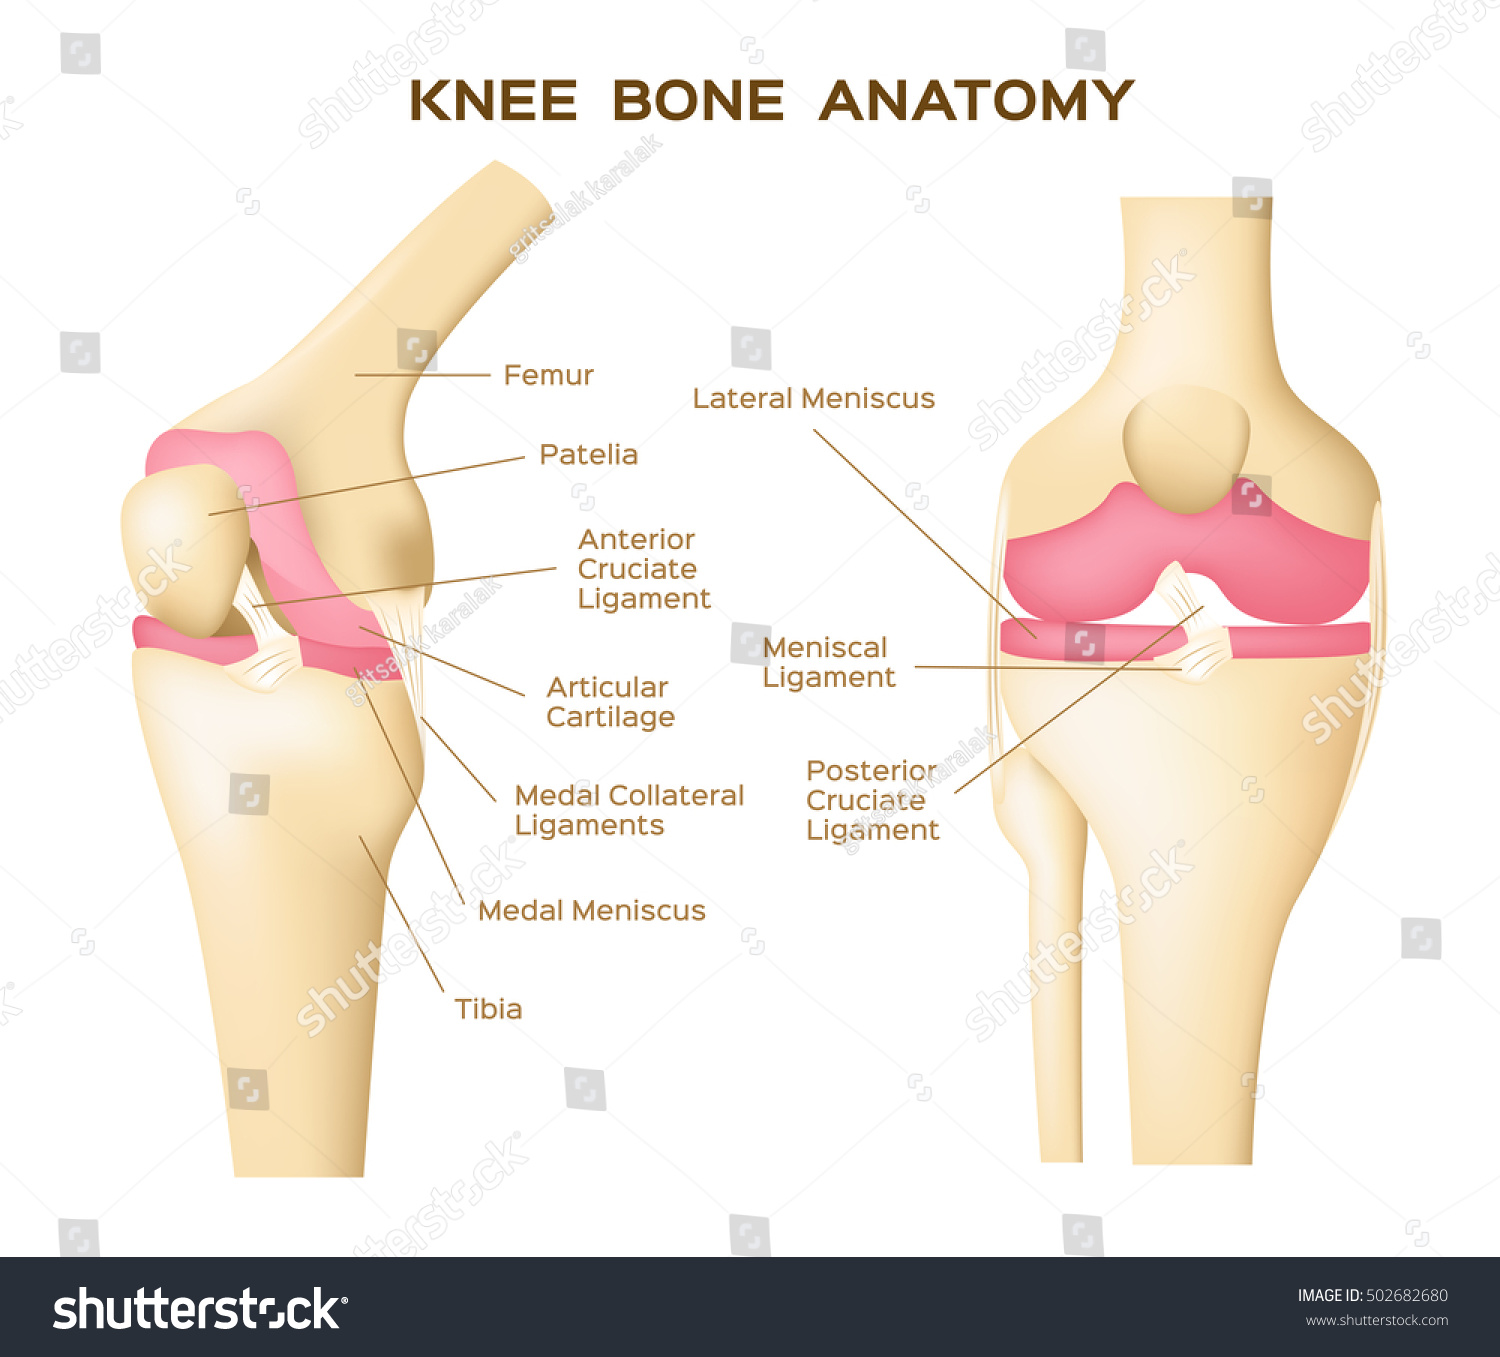 Knee bones anatomy